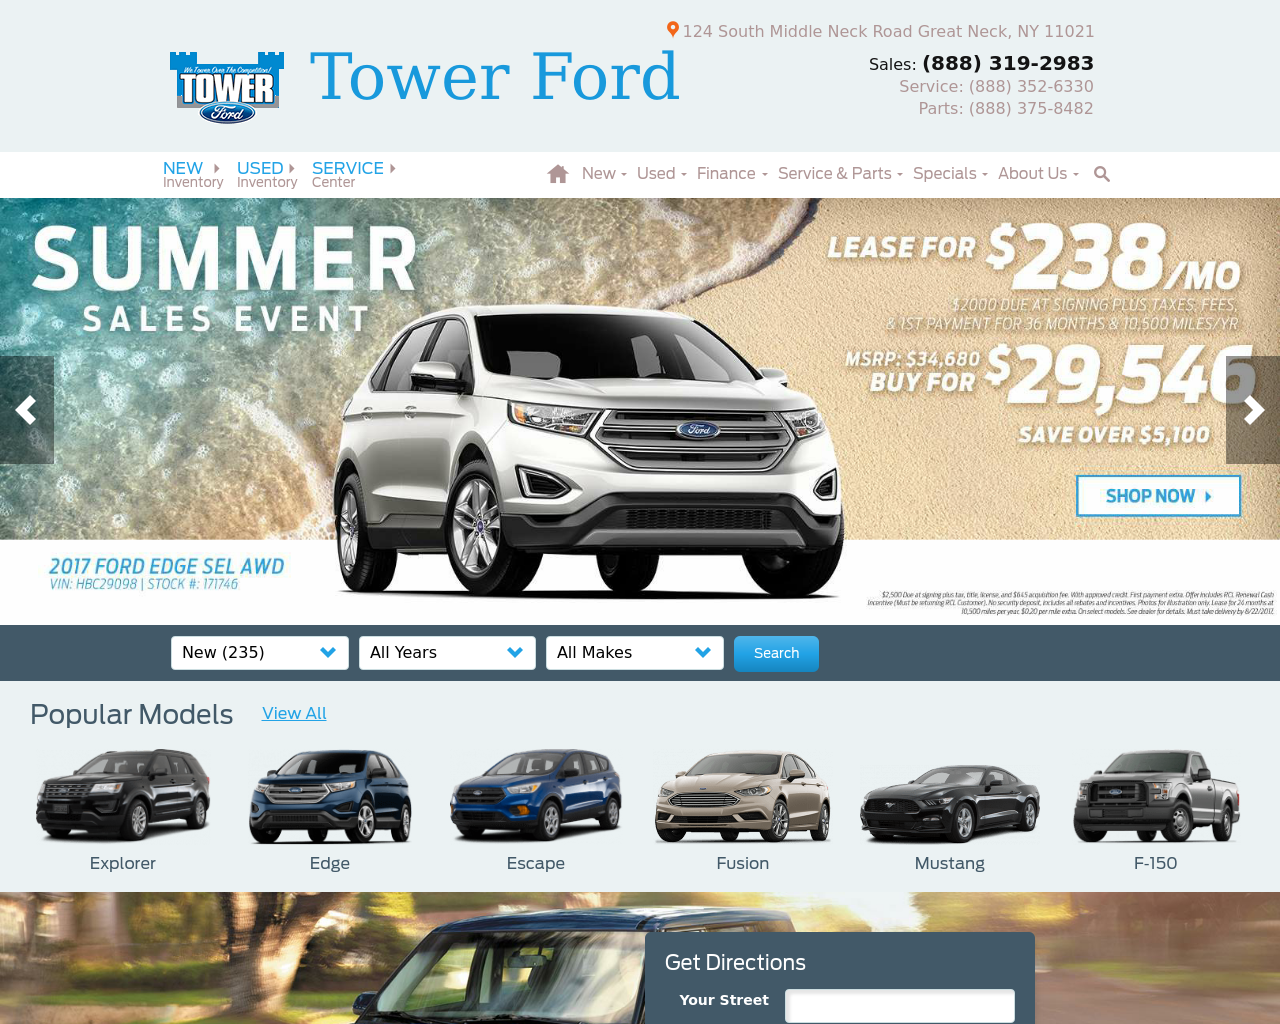 Tower-Ford-Advertising-Reviews-Pricing